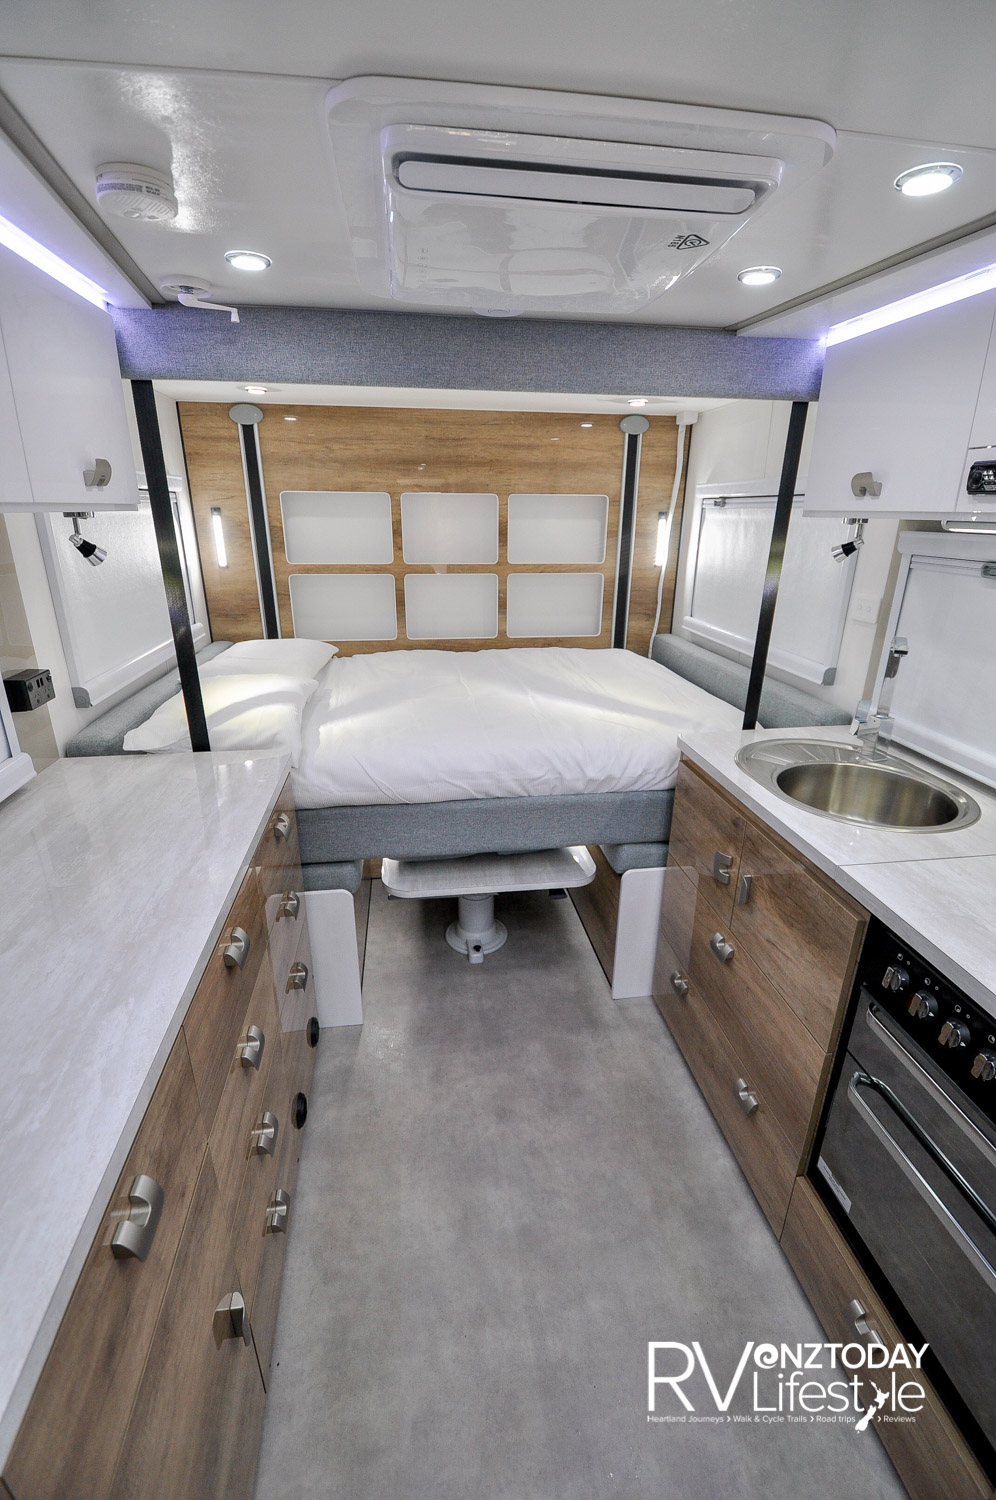 The rear ceiling electric bed comes right down to squab height, and lifts for entertainment use during the day